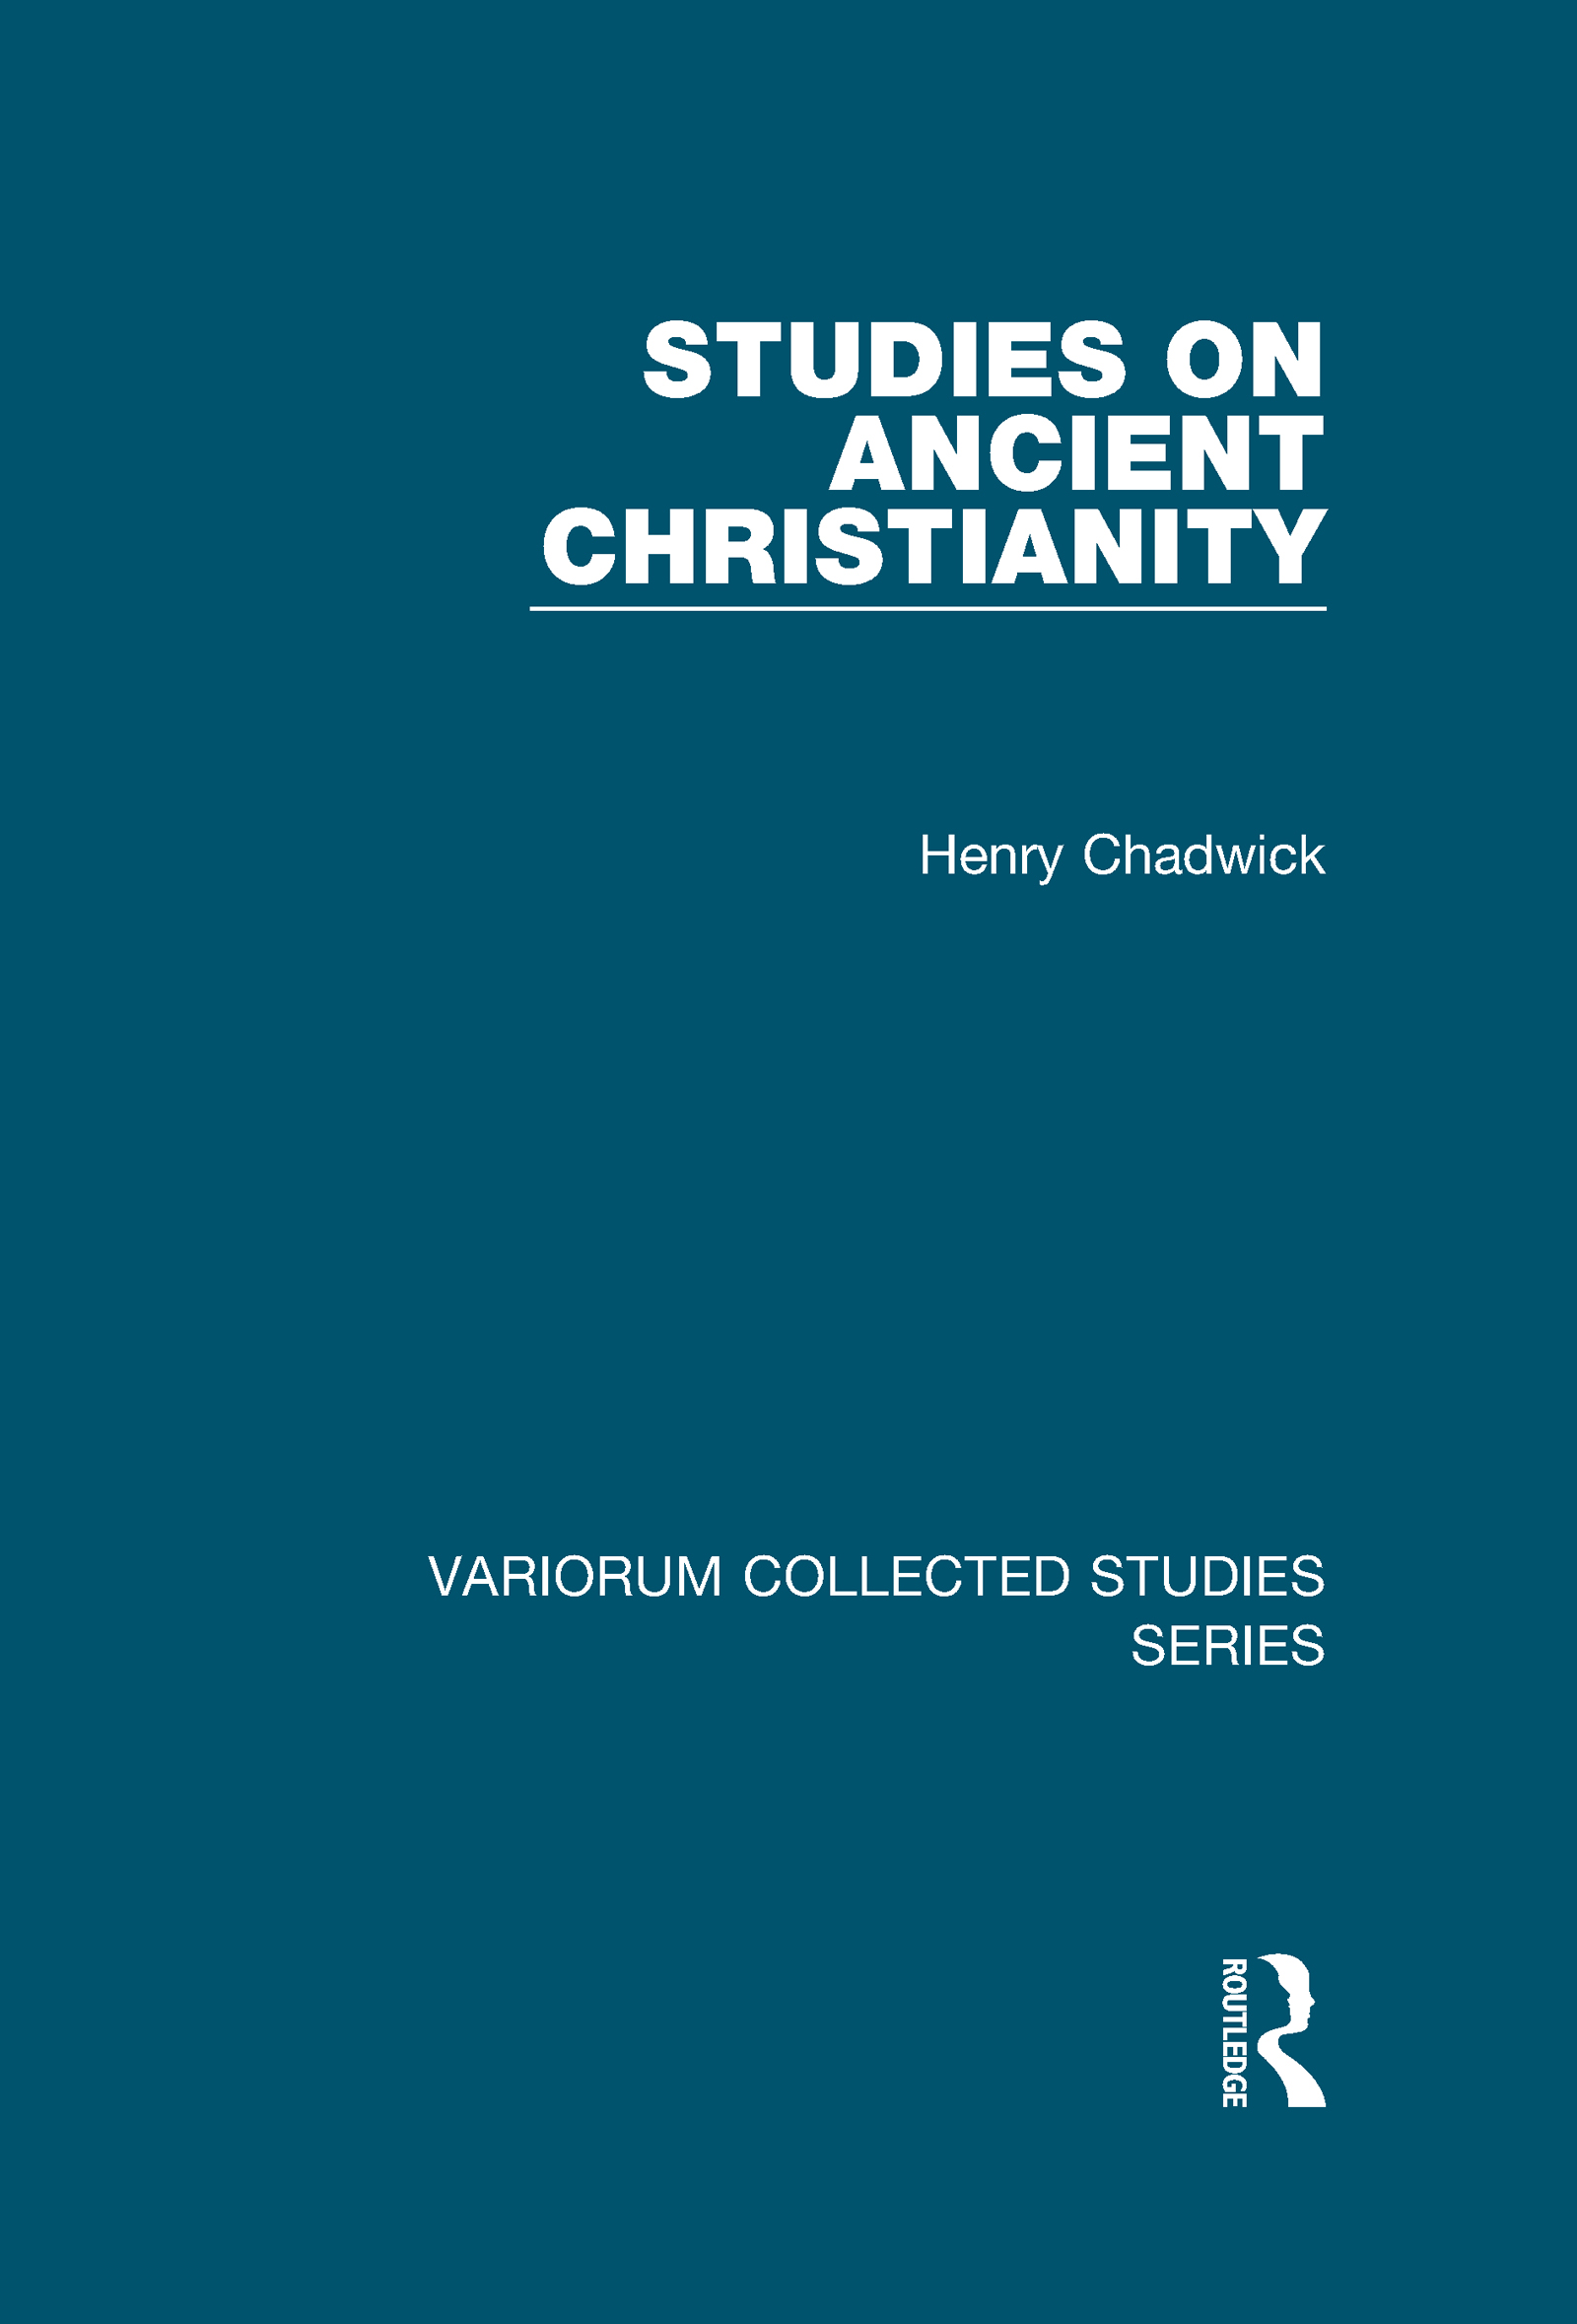 Studies on Ancient Christianity